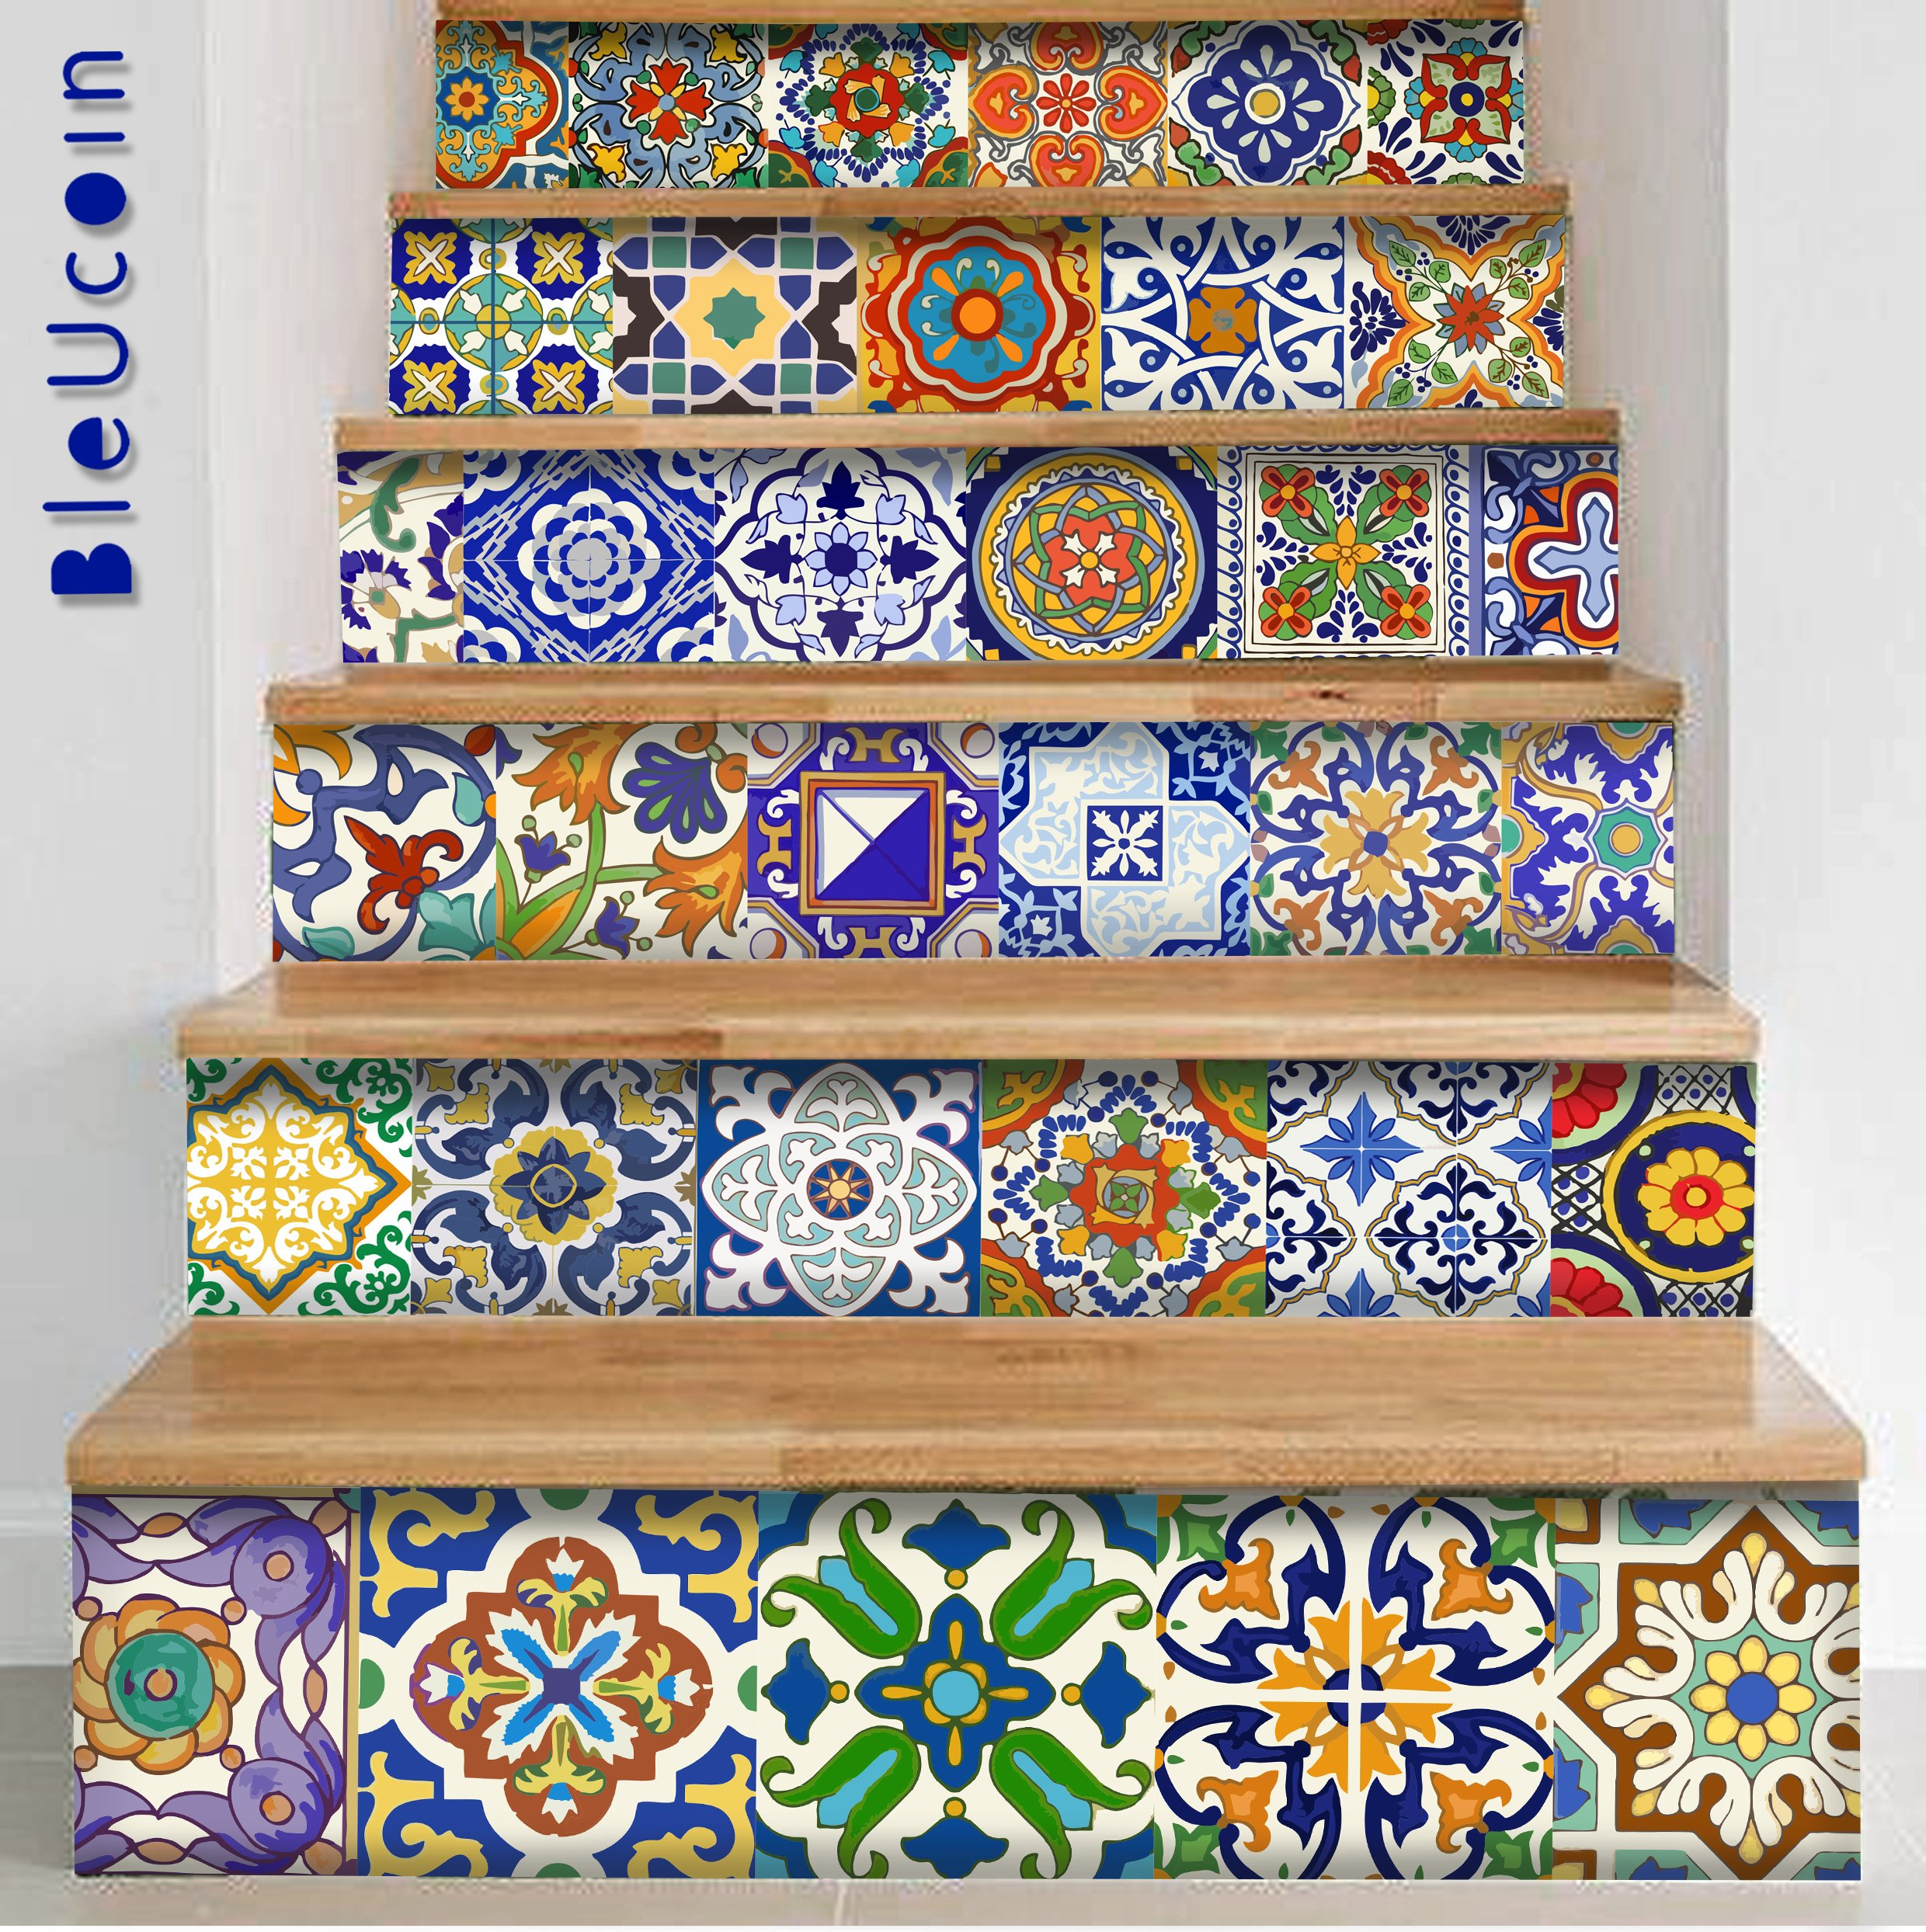 Spanish Mediterranean Talavera Tile Stickers for Kitchen Bathroom Backslash, Removable Stair Riser Decal Peel and Stick Home Decor- 44 Designs - Pack of 44 (8'' x 8'' Inches) by Bleucoin (Image #2)